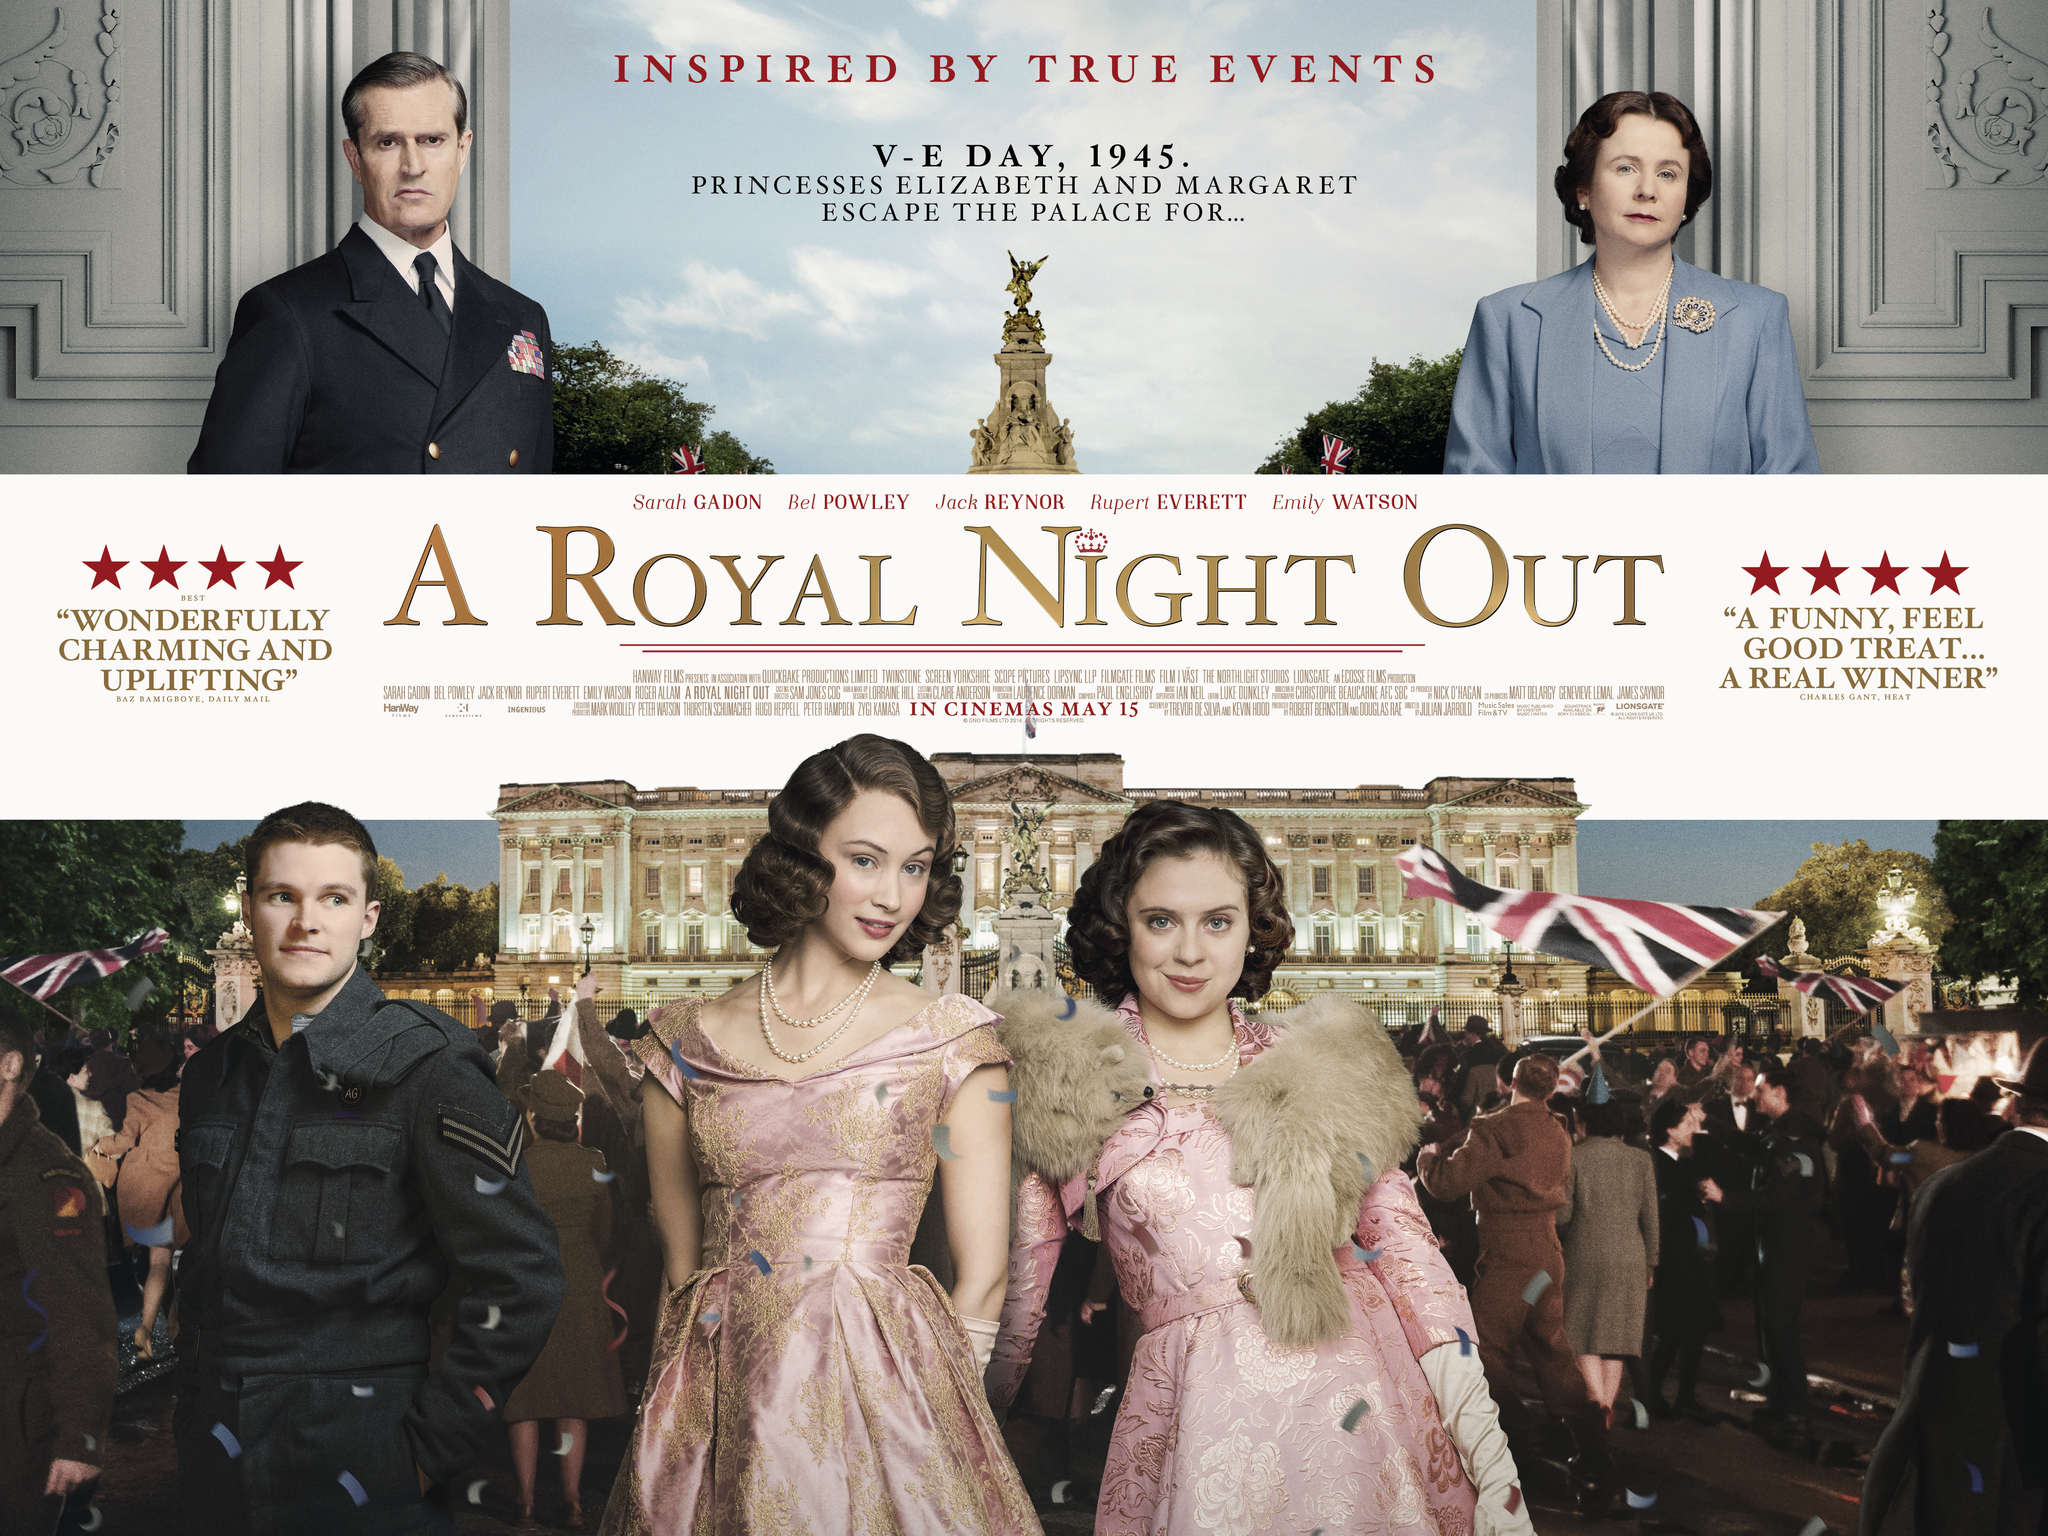 Rupert Everett, Emily Watson, Sarah Gadon, Bel Powley, and Jack Reynor in A Royal Night Out (2015)